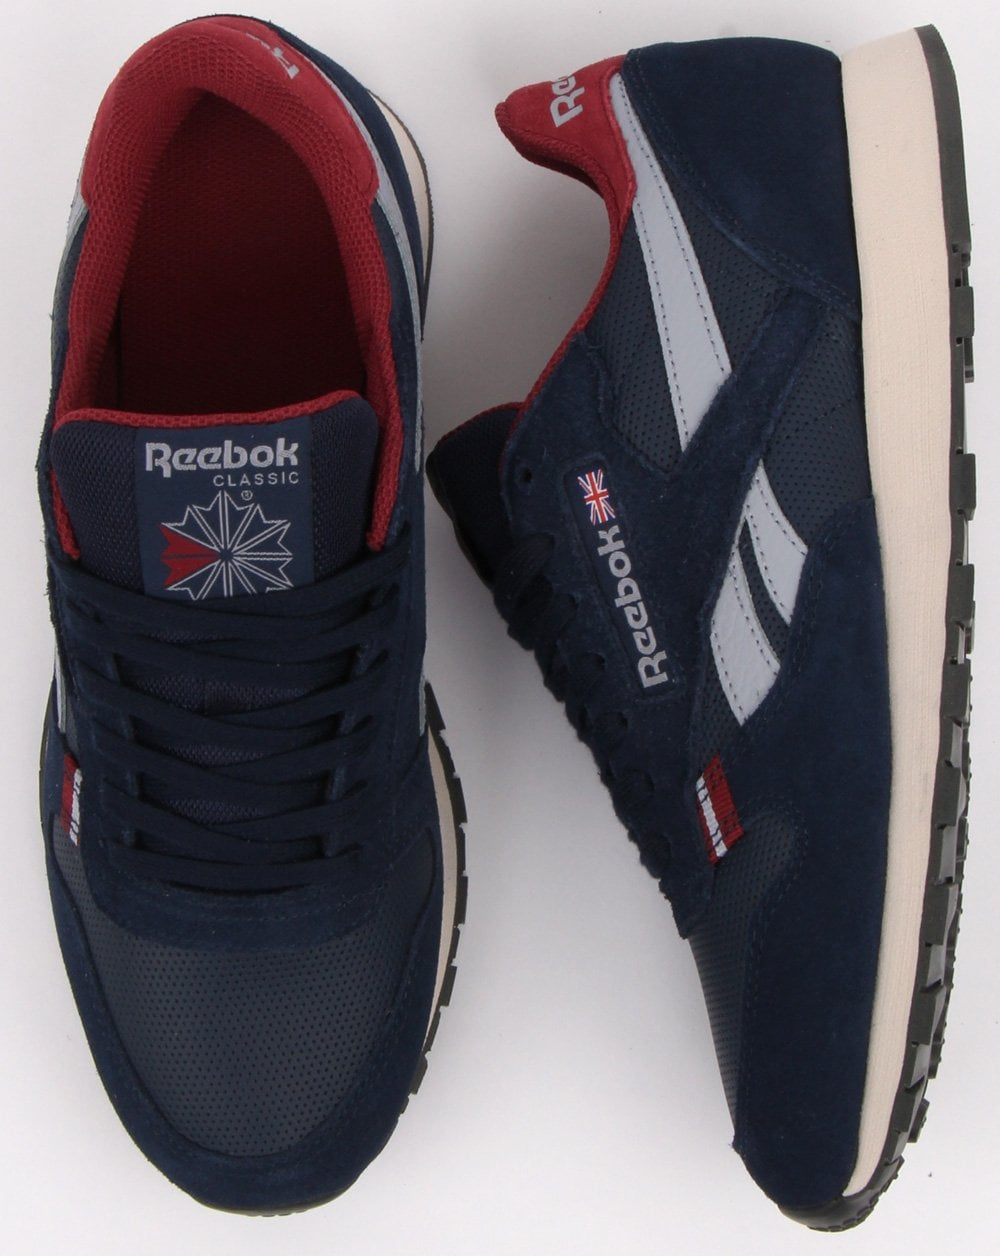 29678a5ab24 Reebok Reebok Classic Leather Trainers Navy red